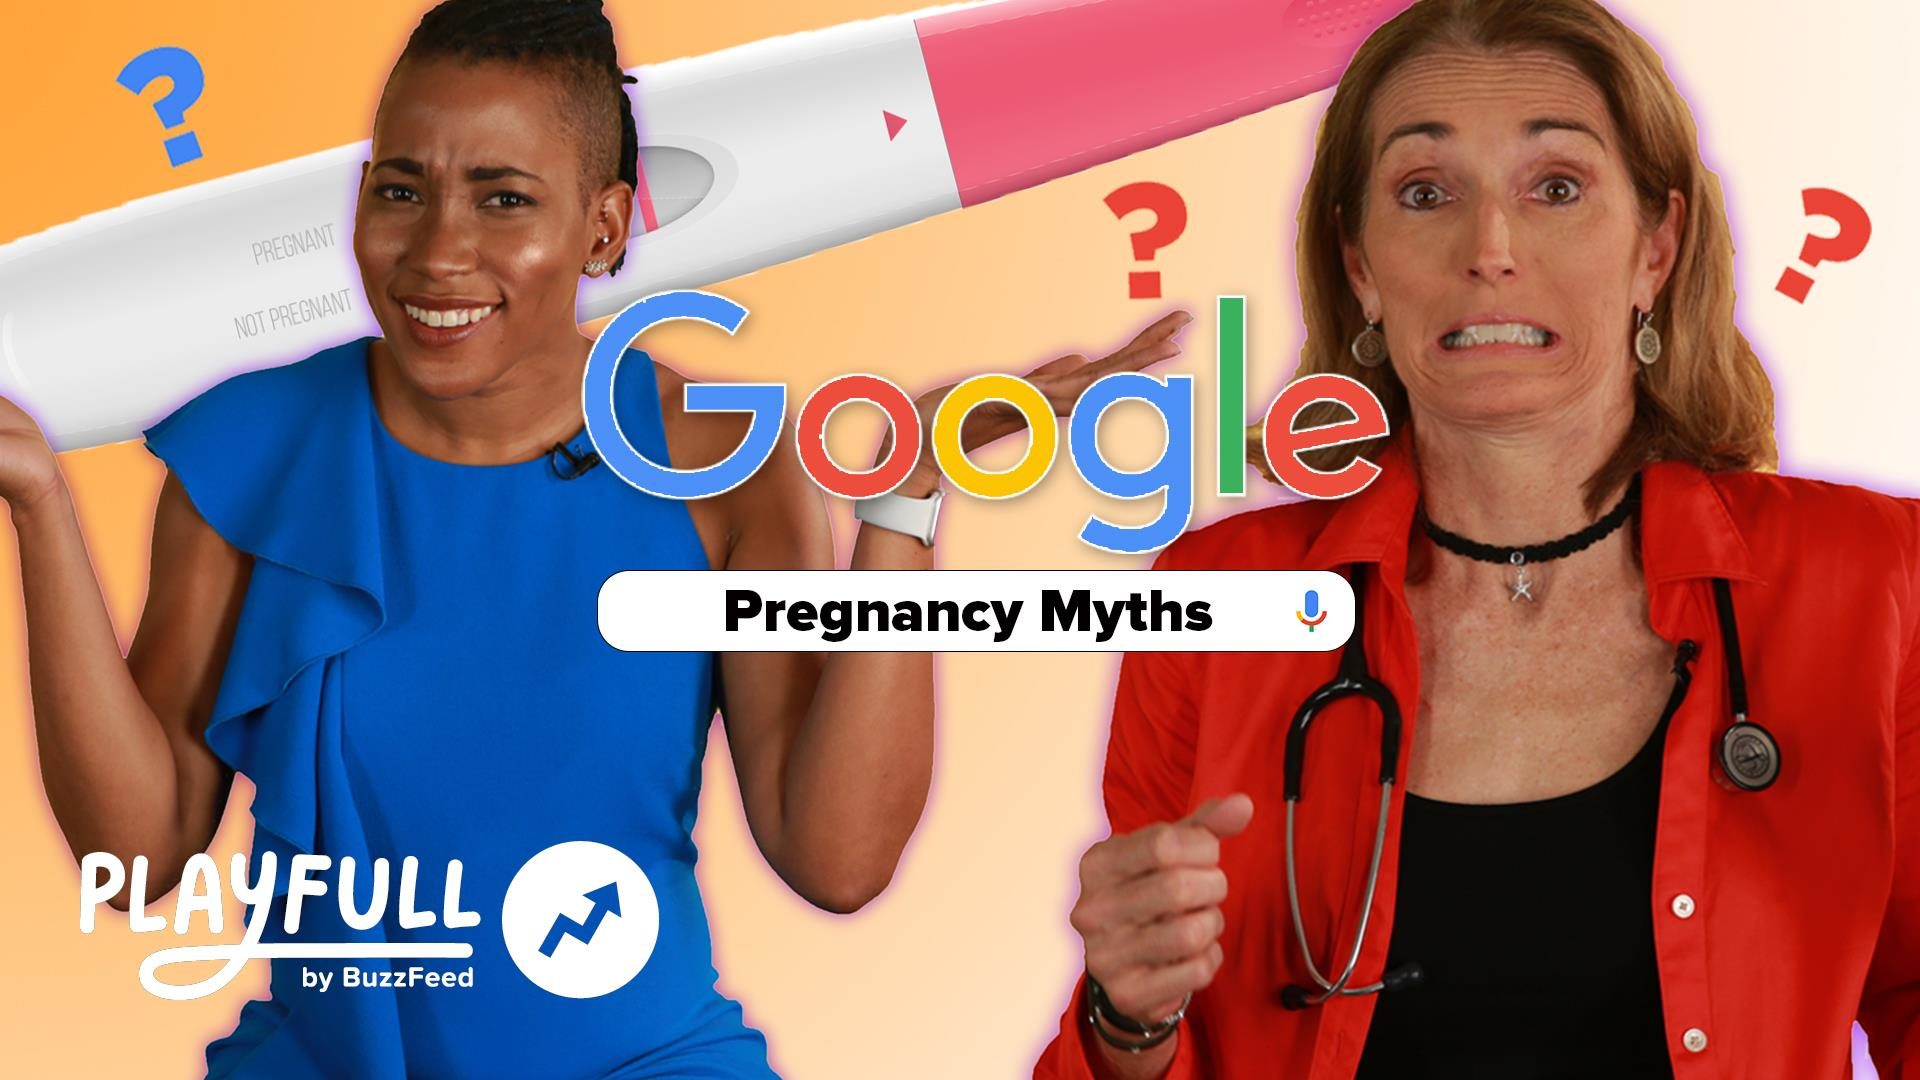 Doctors react to the most Googled pregnancy myths online